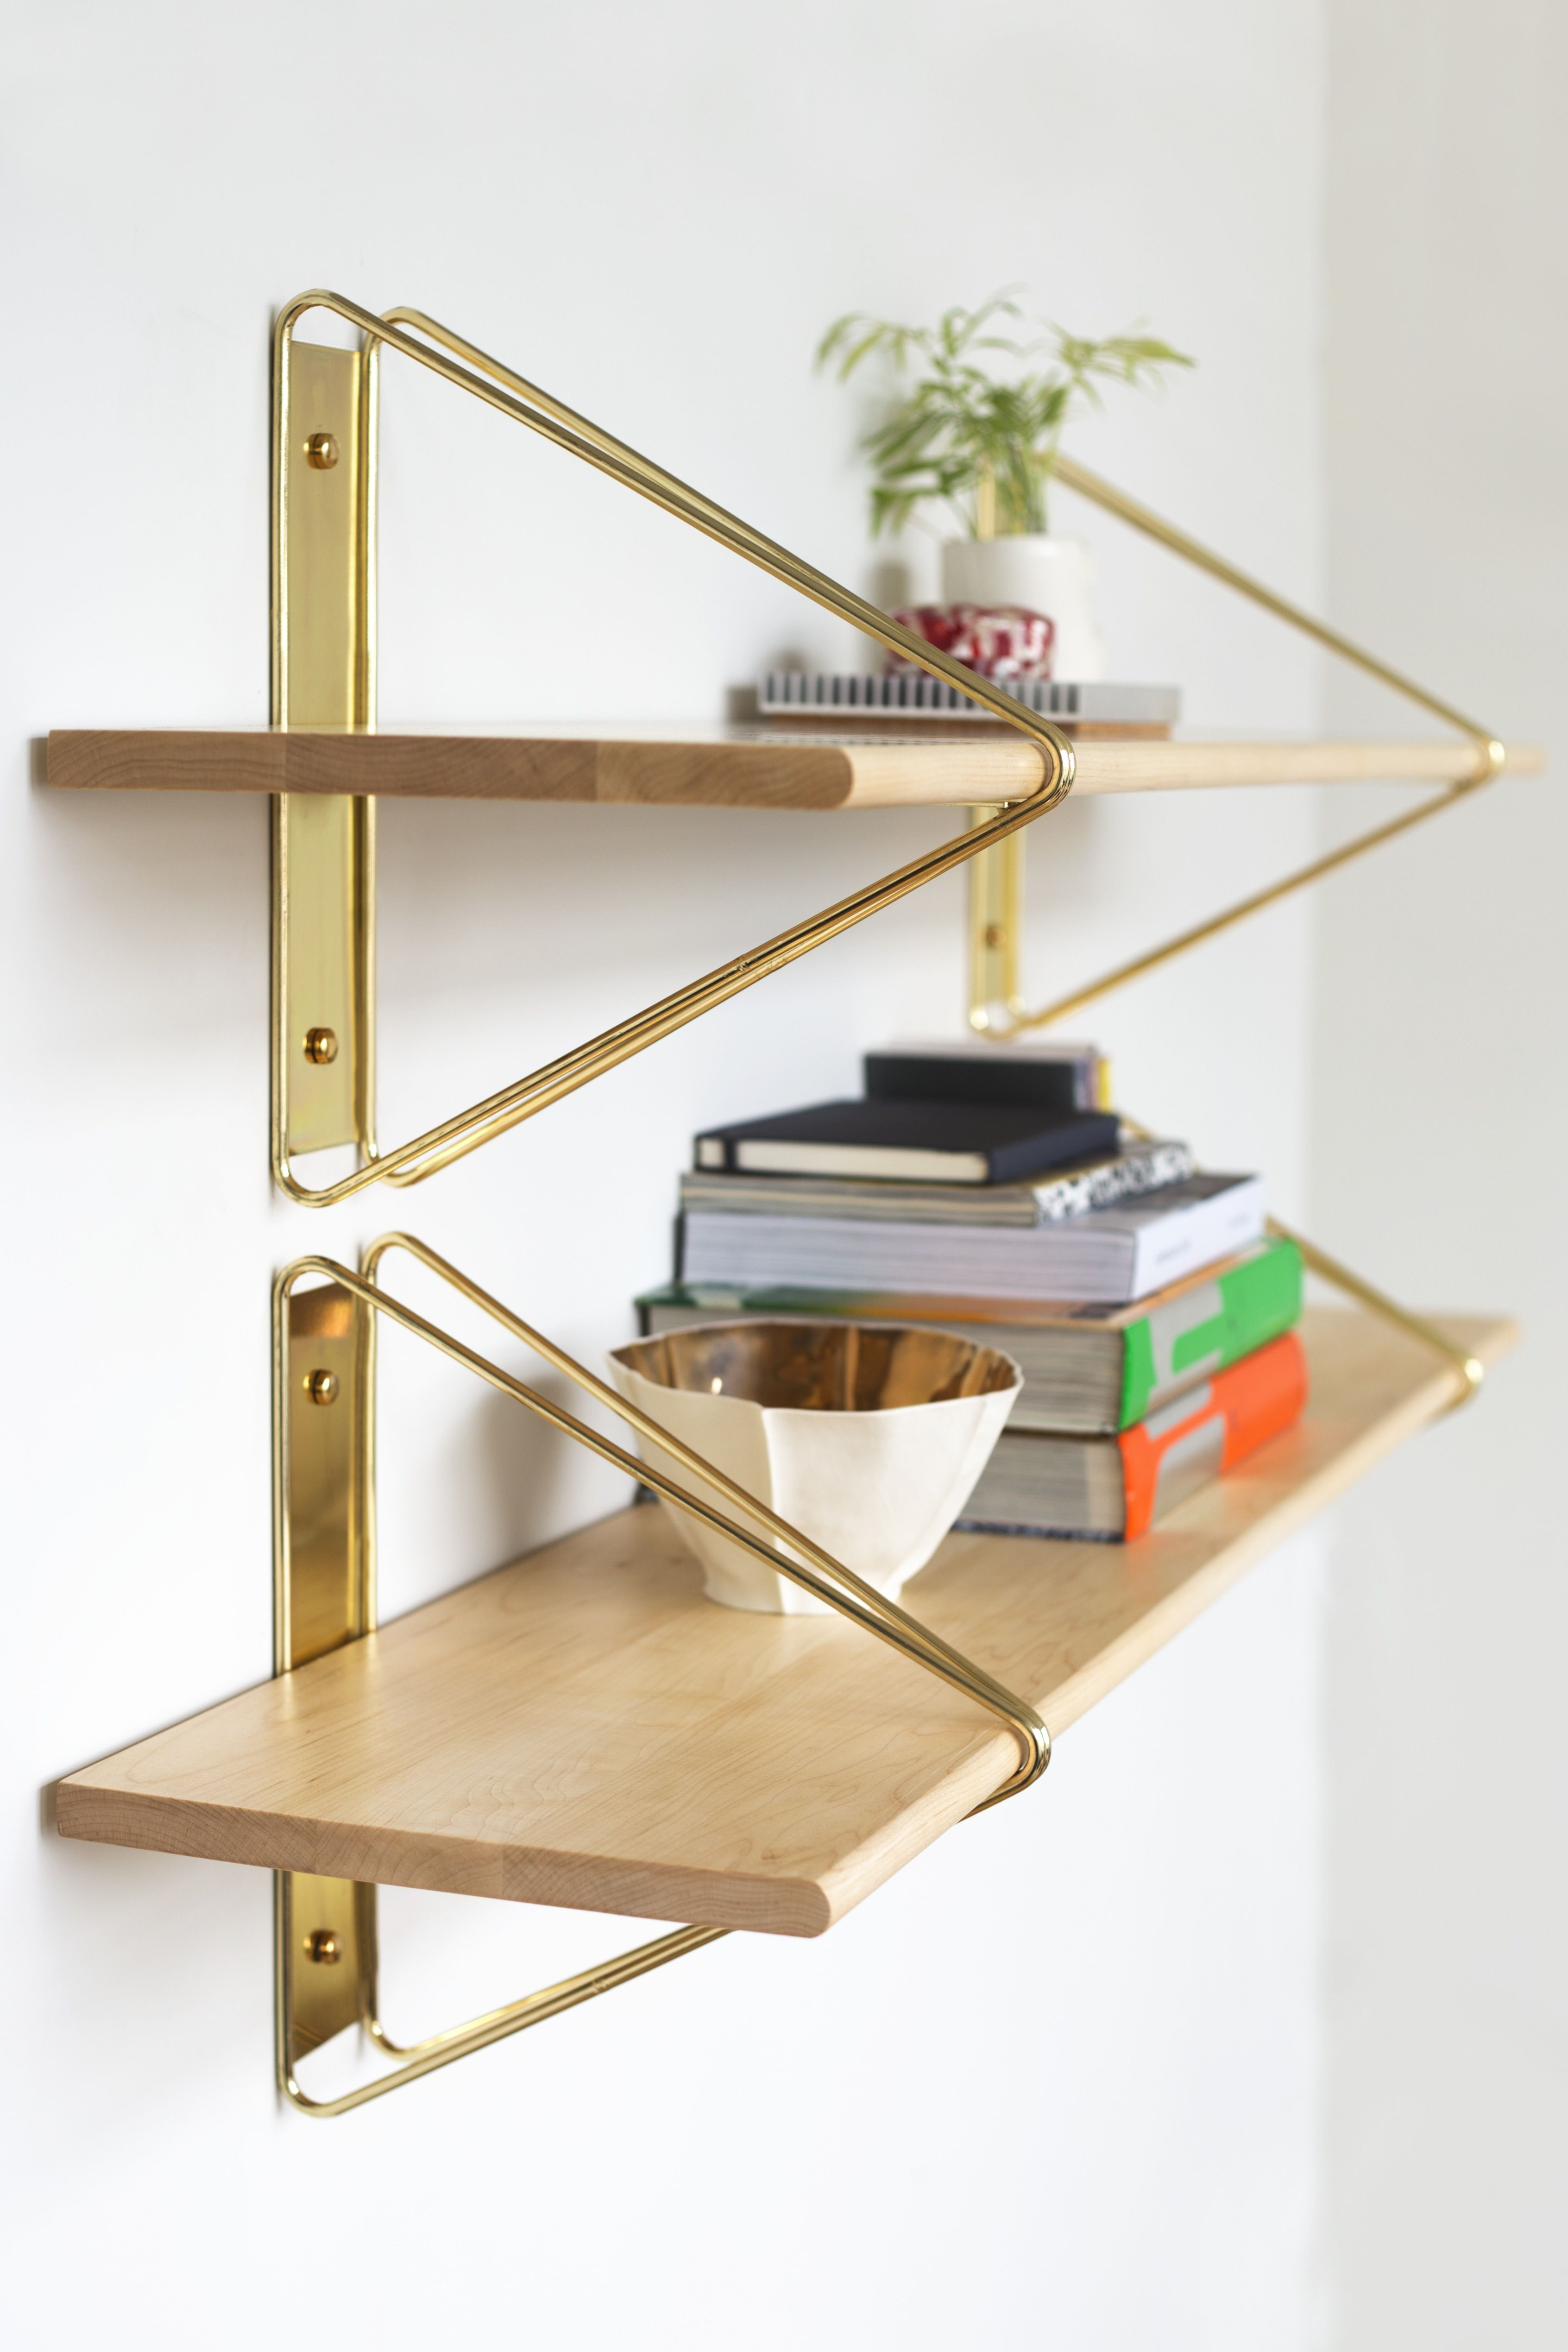 Souda S Strut Shelving Is A Modern Wall Mounted Shelving System